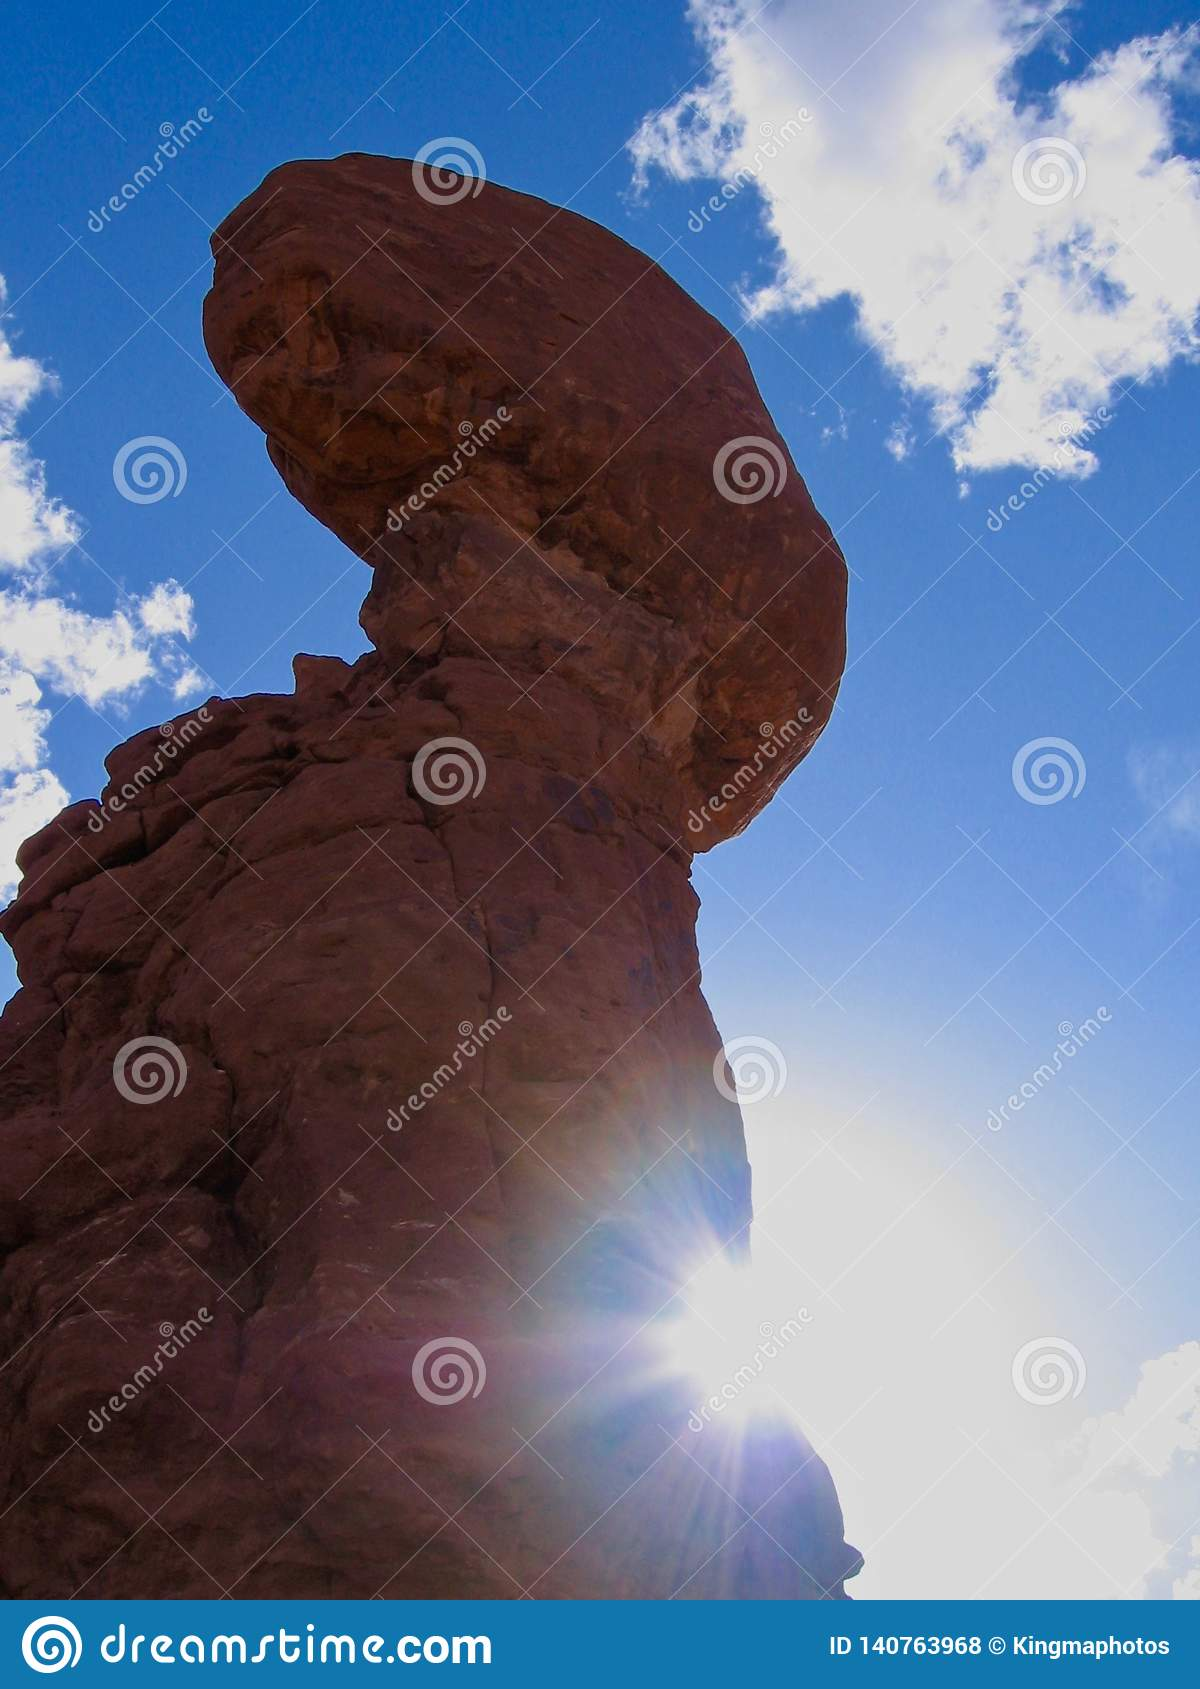 Balanced Rock in Arches National Park, Utah, United States of America. Blue sky and sunny late afternoon.